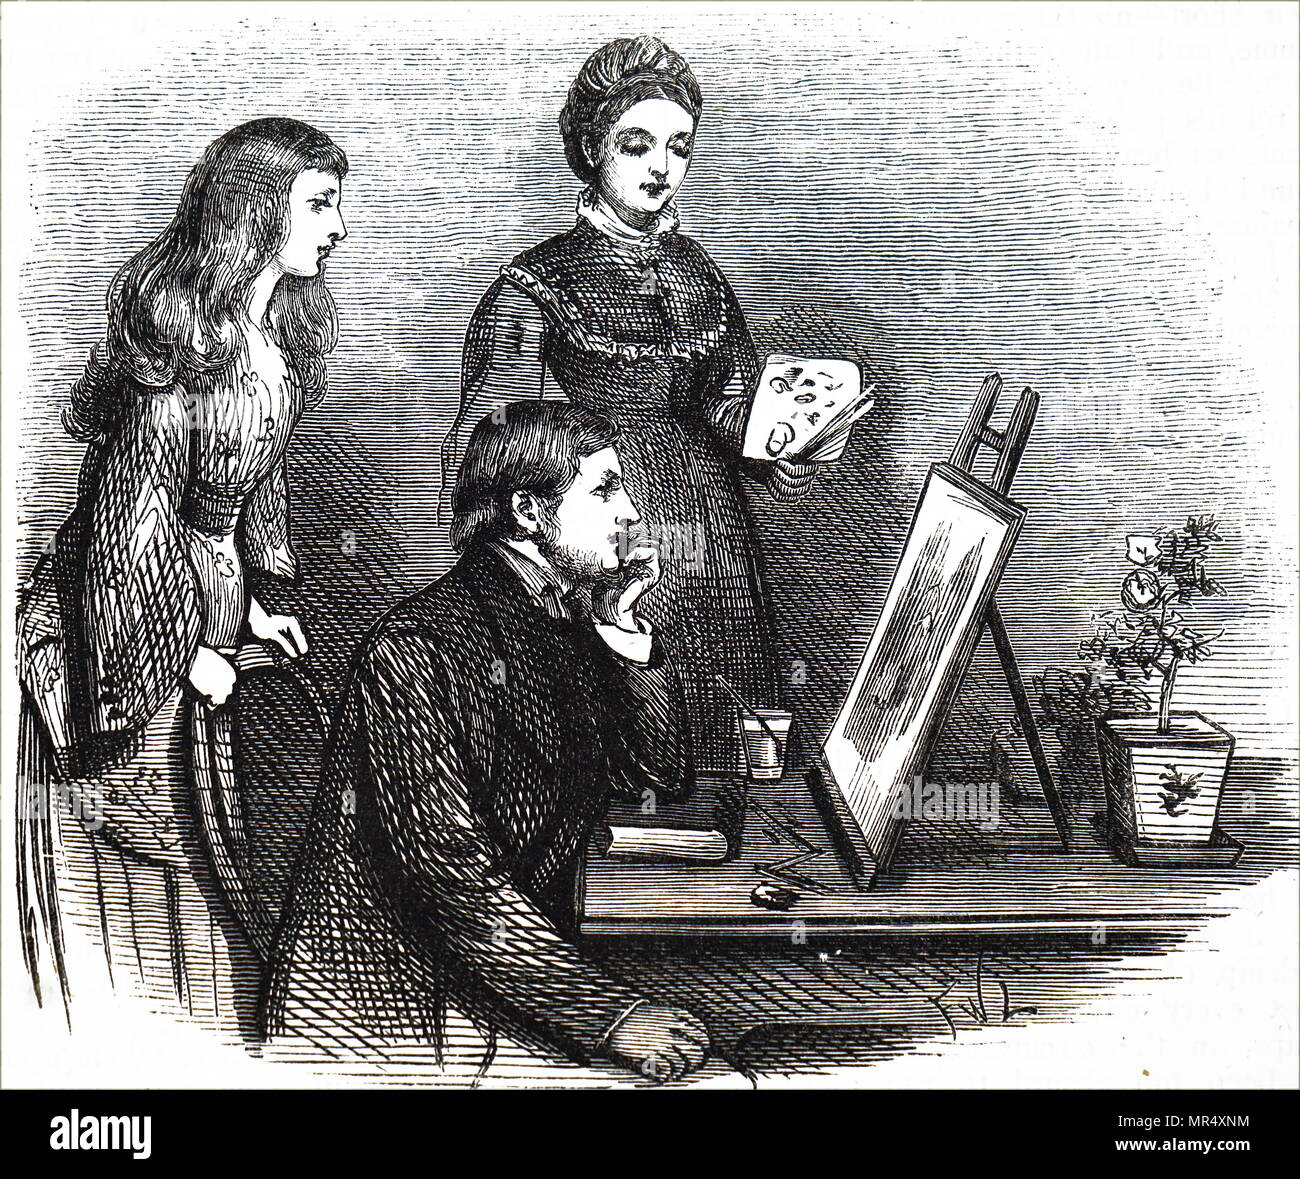 Illustration depicting a young woman presenting her work to her family. Illustrated by Francis Wilfred Lawson (1842-1935) a British artist and illustrator. Dated 19th century - Stock Image